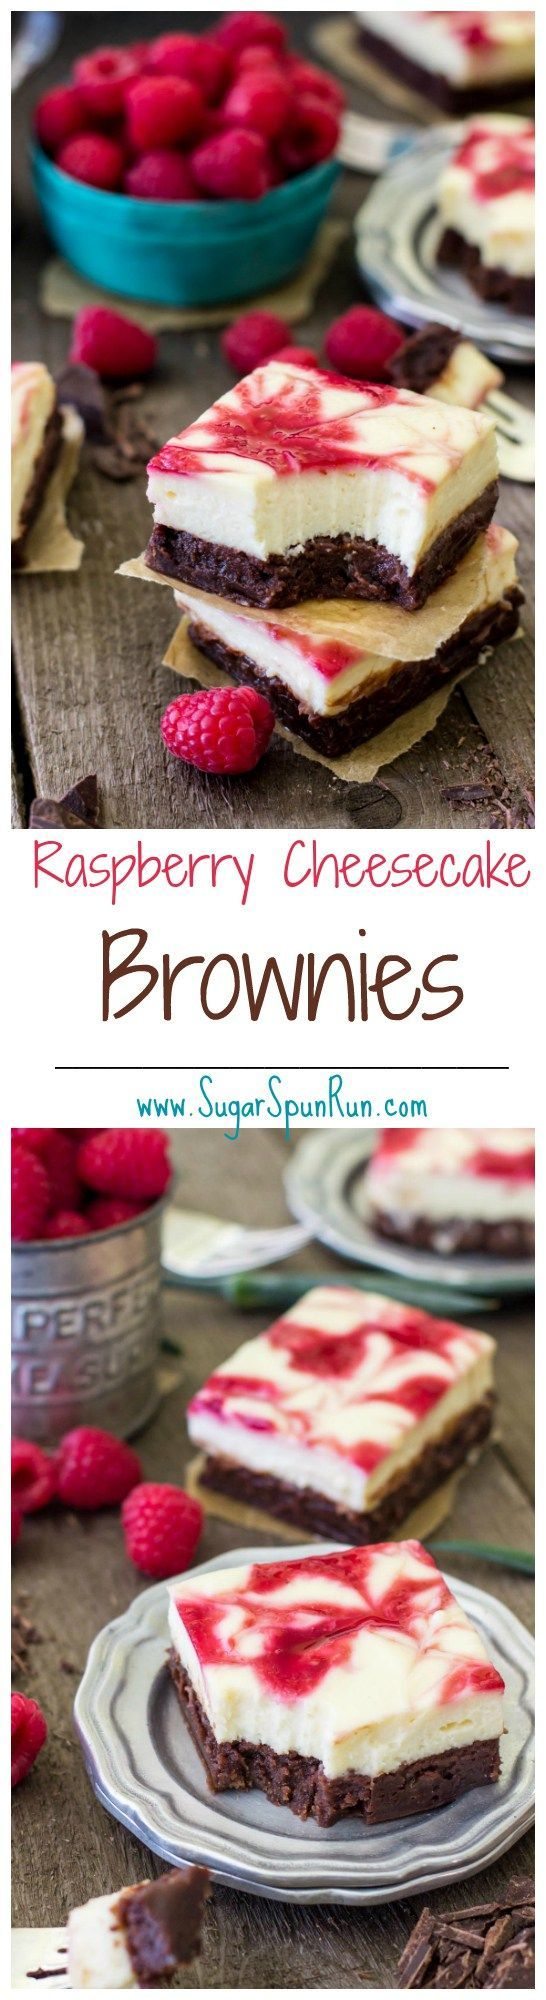 Raspberry Cheesecake Brownies -- http://www.sugarspunrun.com